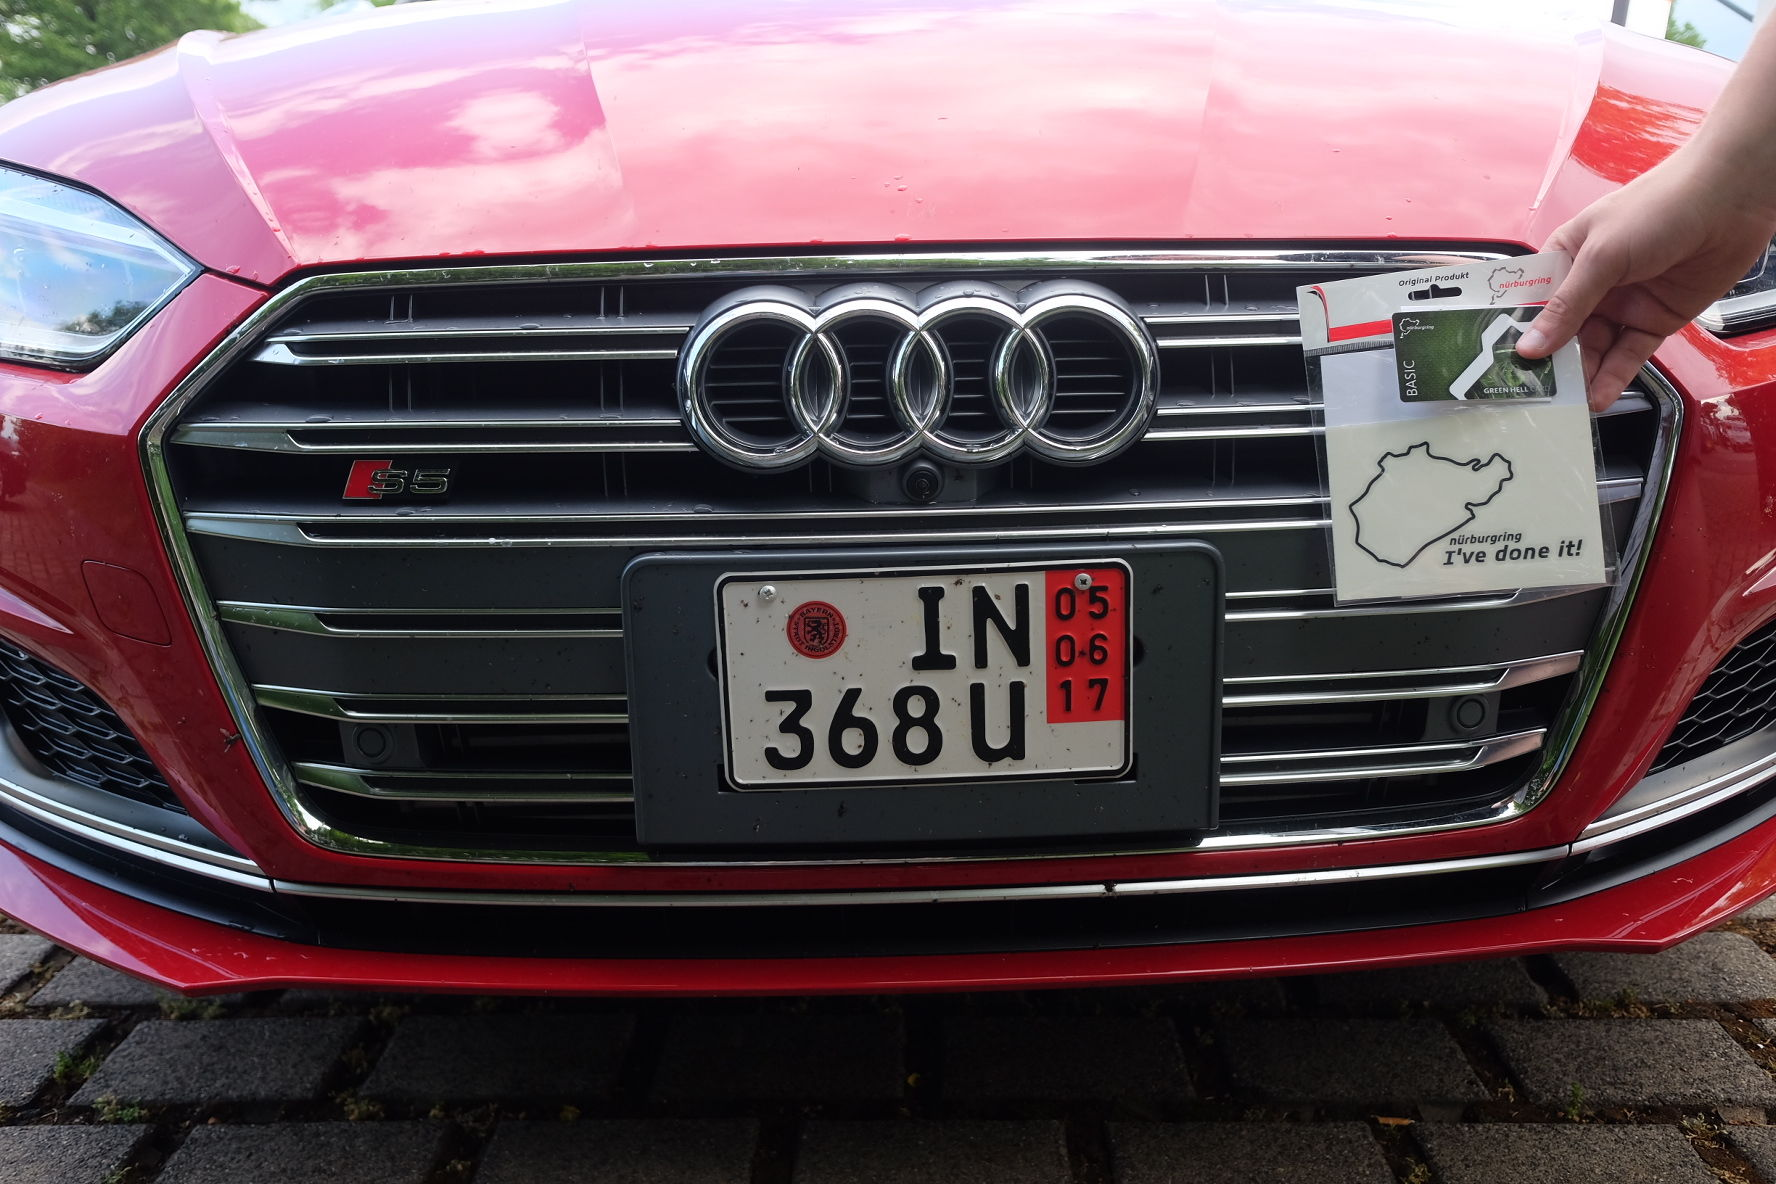 Fantastic enjoy the nurburgring was awesome more pics of our journey to come